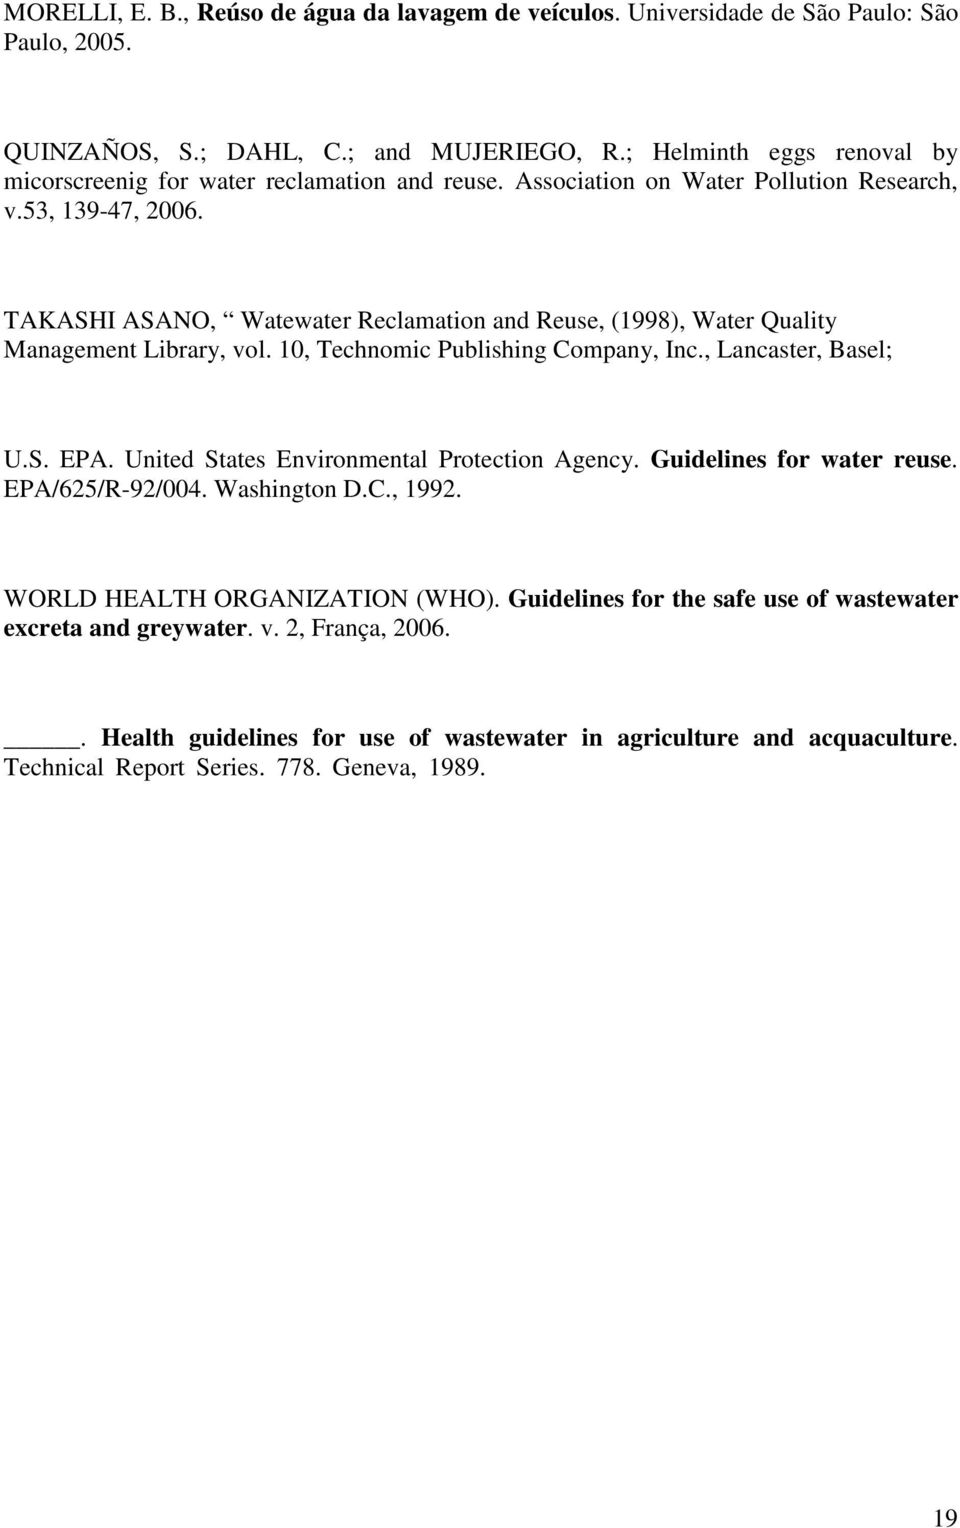 TAKASHI ASANO, Watewater Reclamation and Reuse, (1998), Water Quality Management Library, vol. 10, Technomic Publishing Company, Inc., Lancaster, Basel; U.S. EPA.